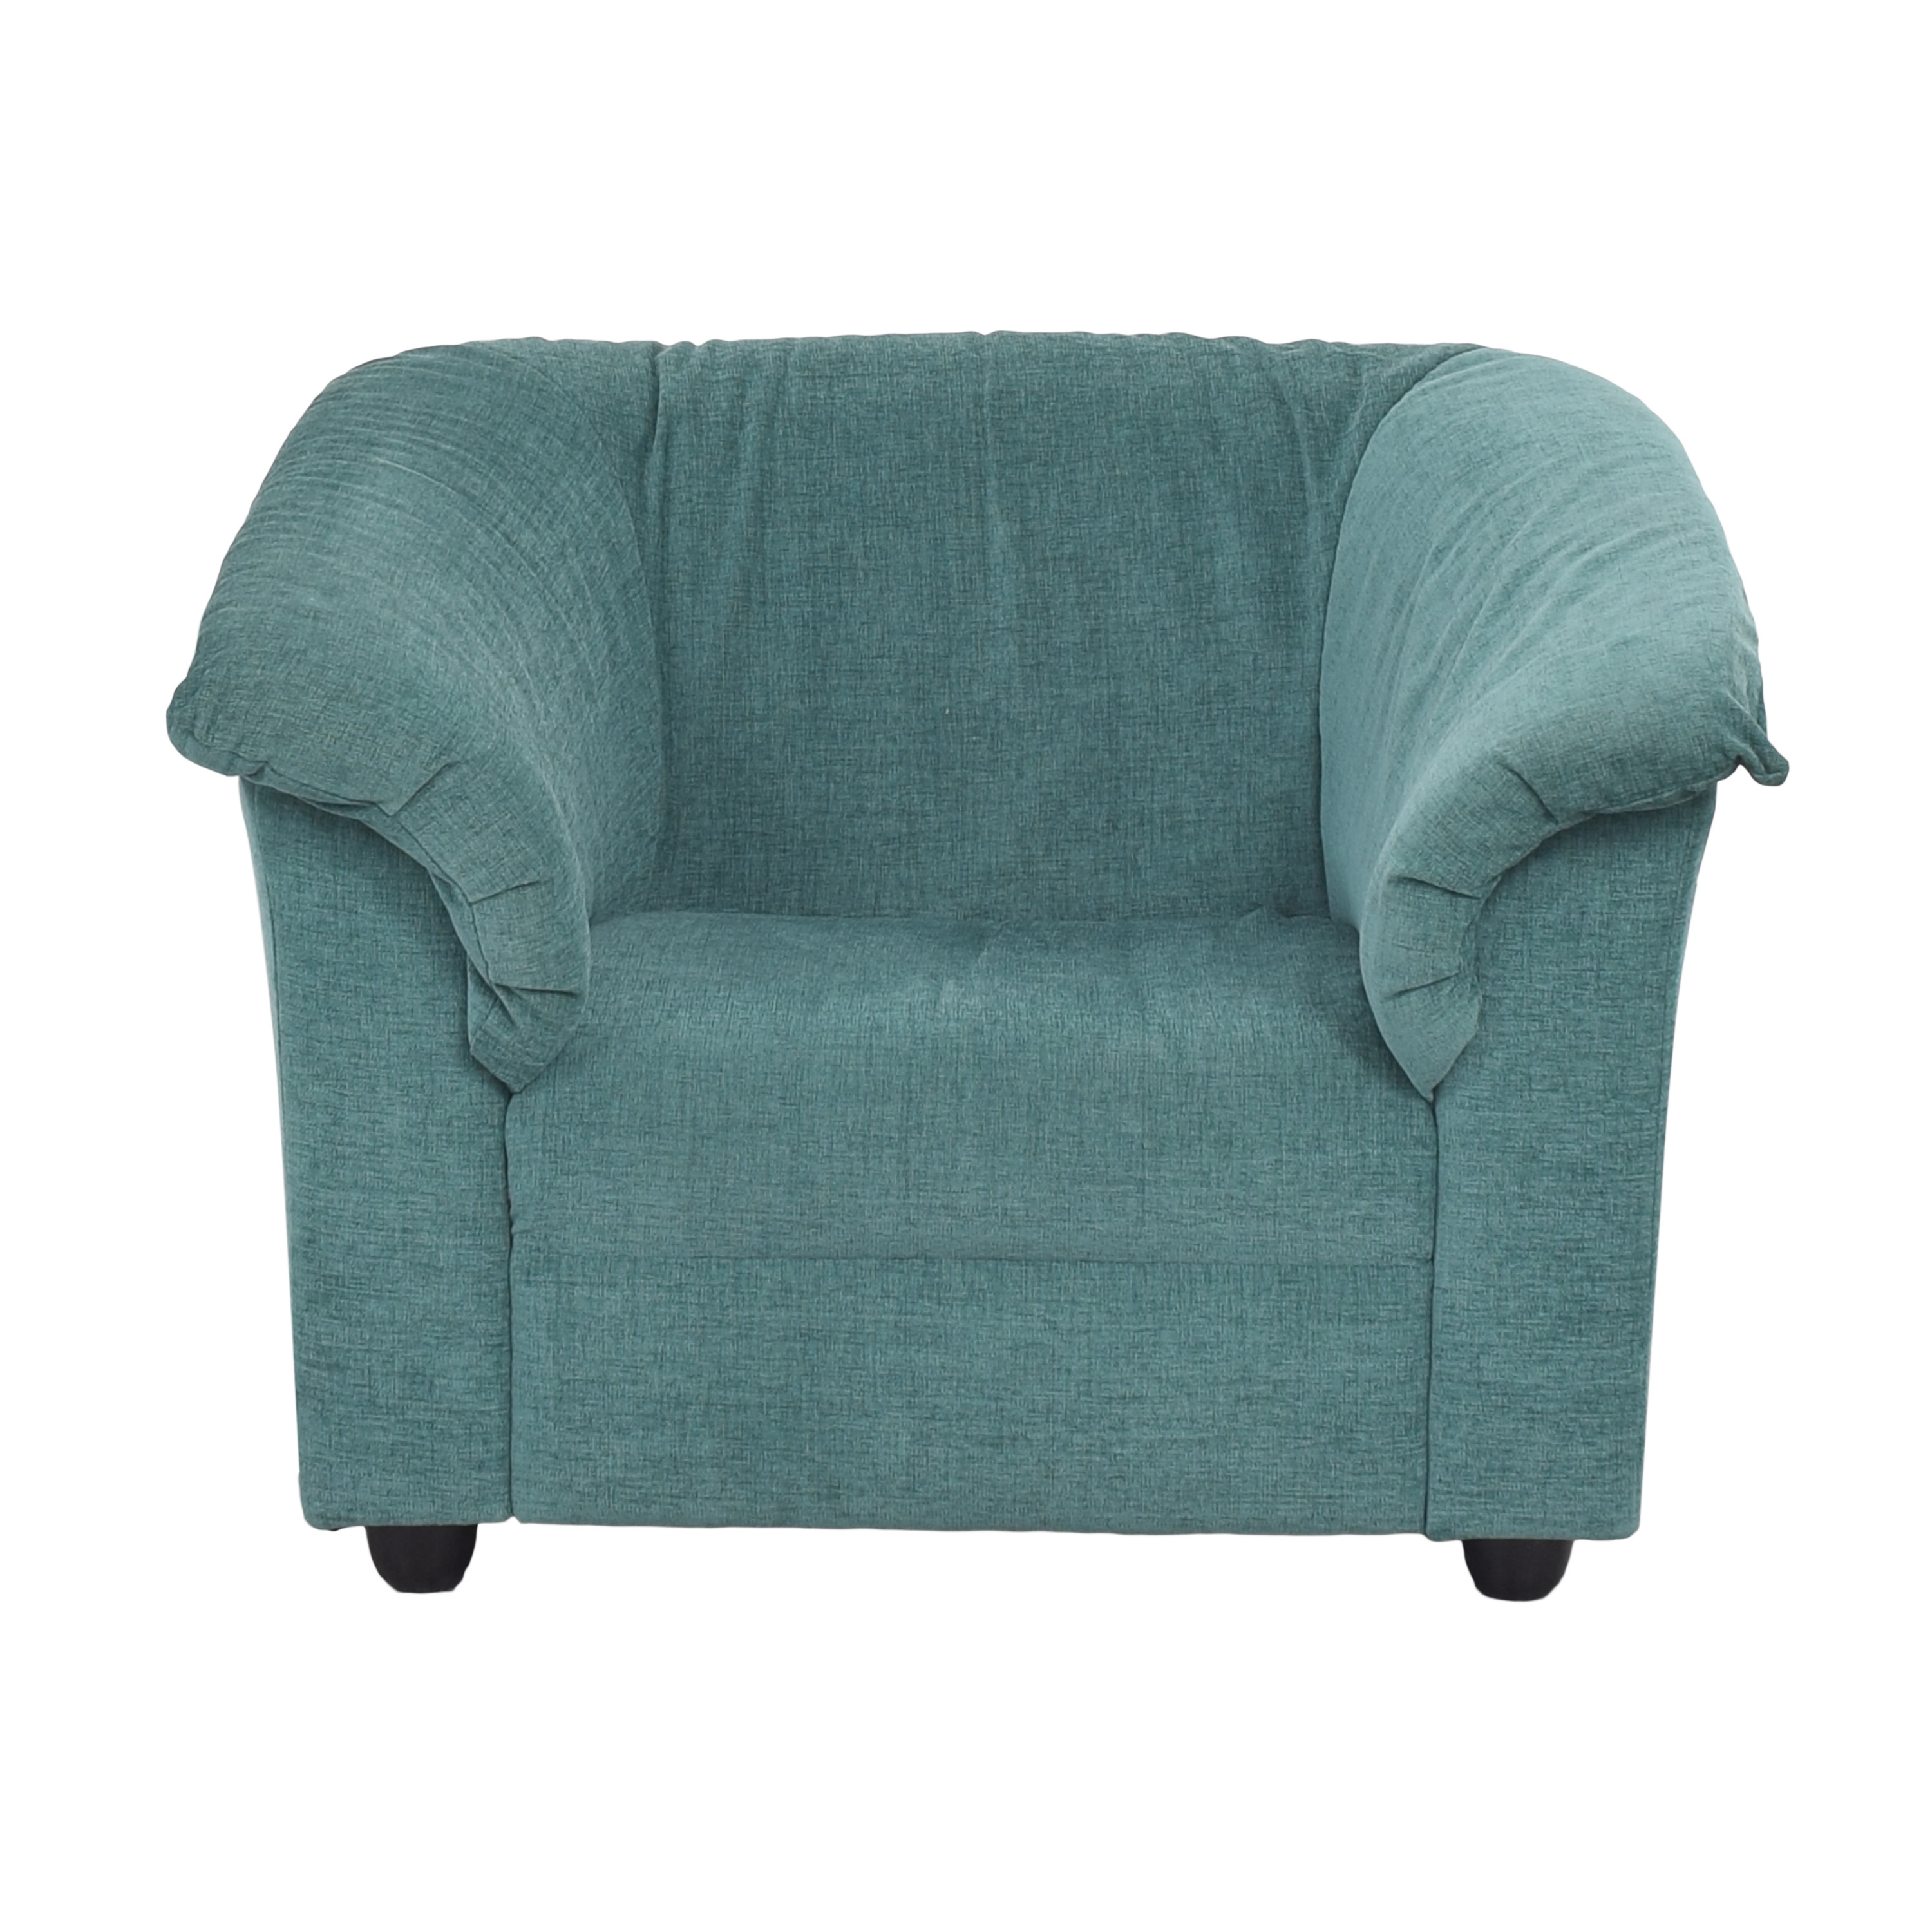 buy Macy's Upholstered Accent Chair Macy's Chairs